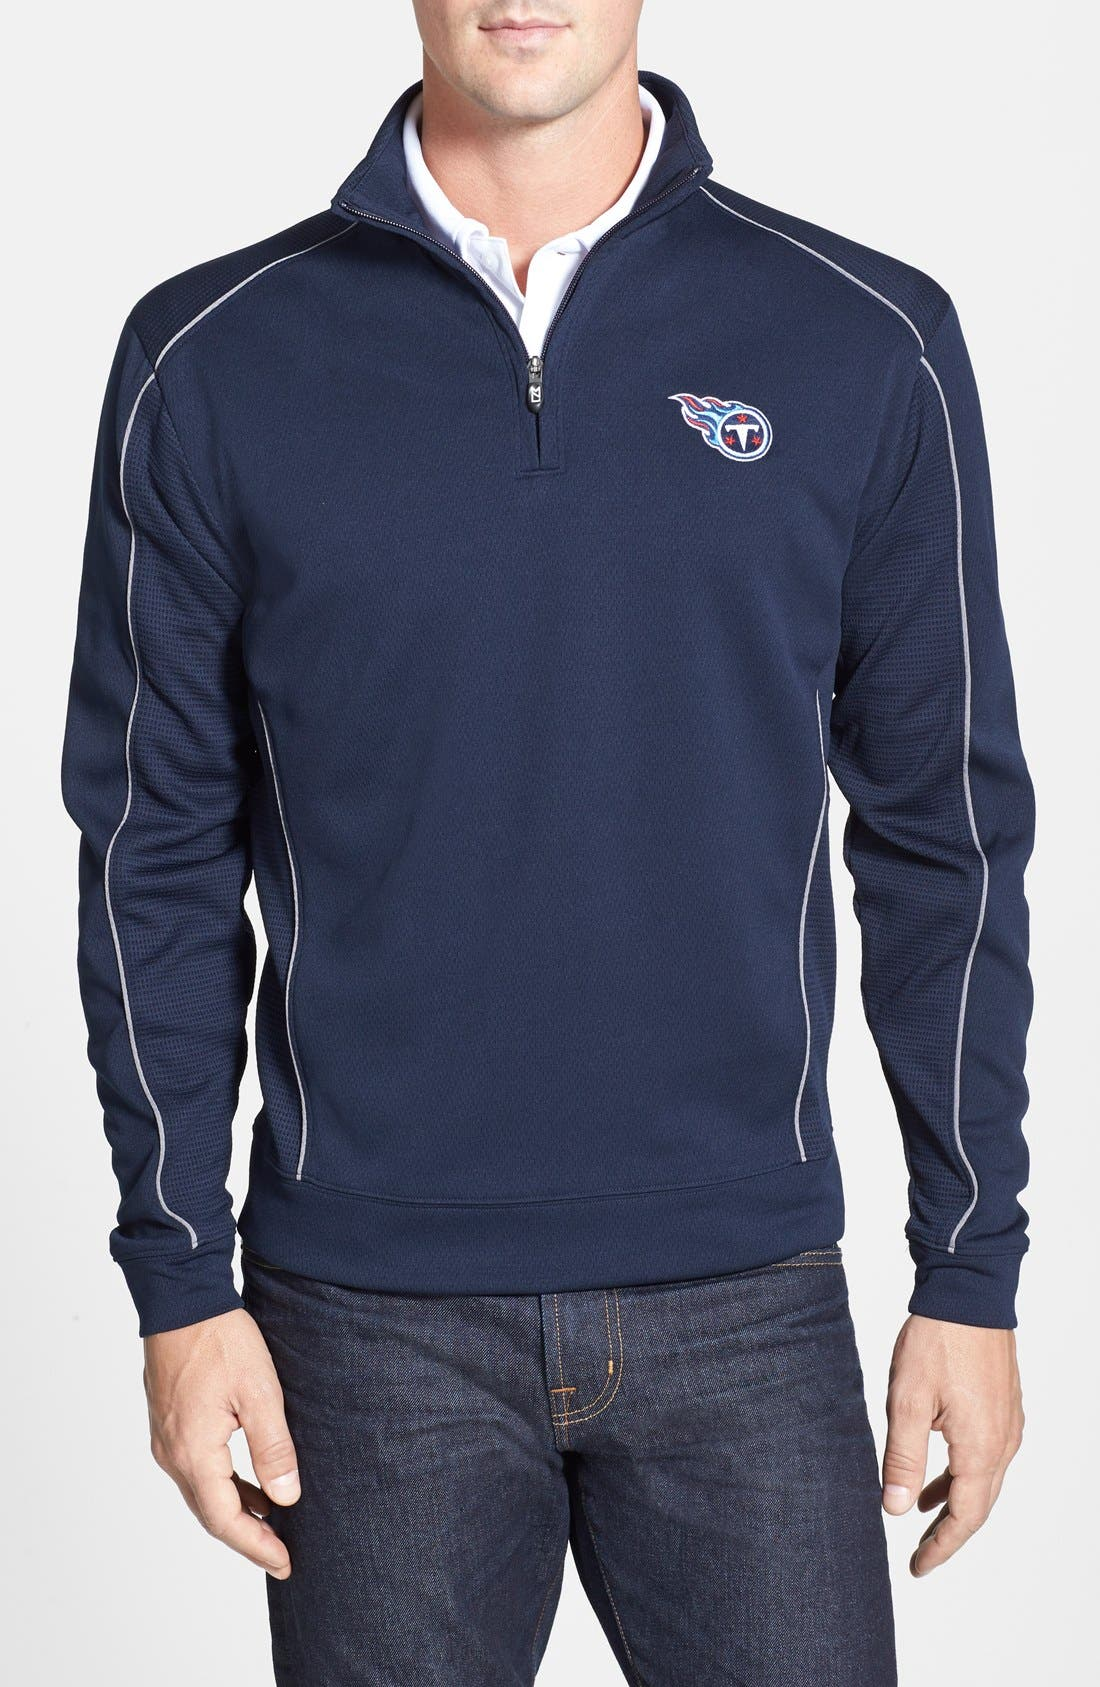 Alternate Image 1 Selected - Cutter & Buck Tennessee Titans - Edge DryTec Moisture Wicking Half Zip Pullover